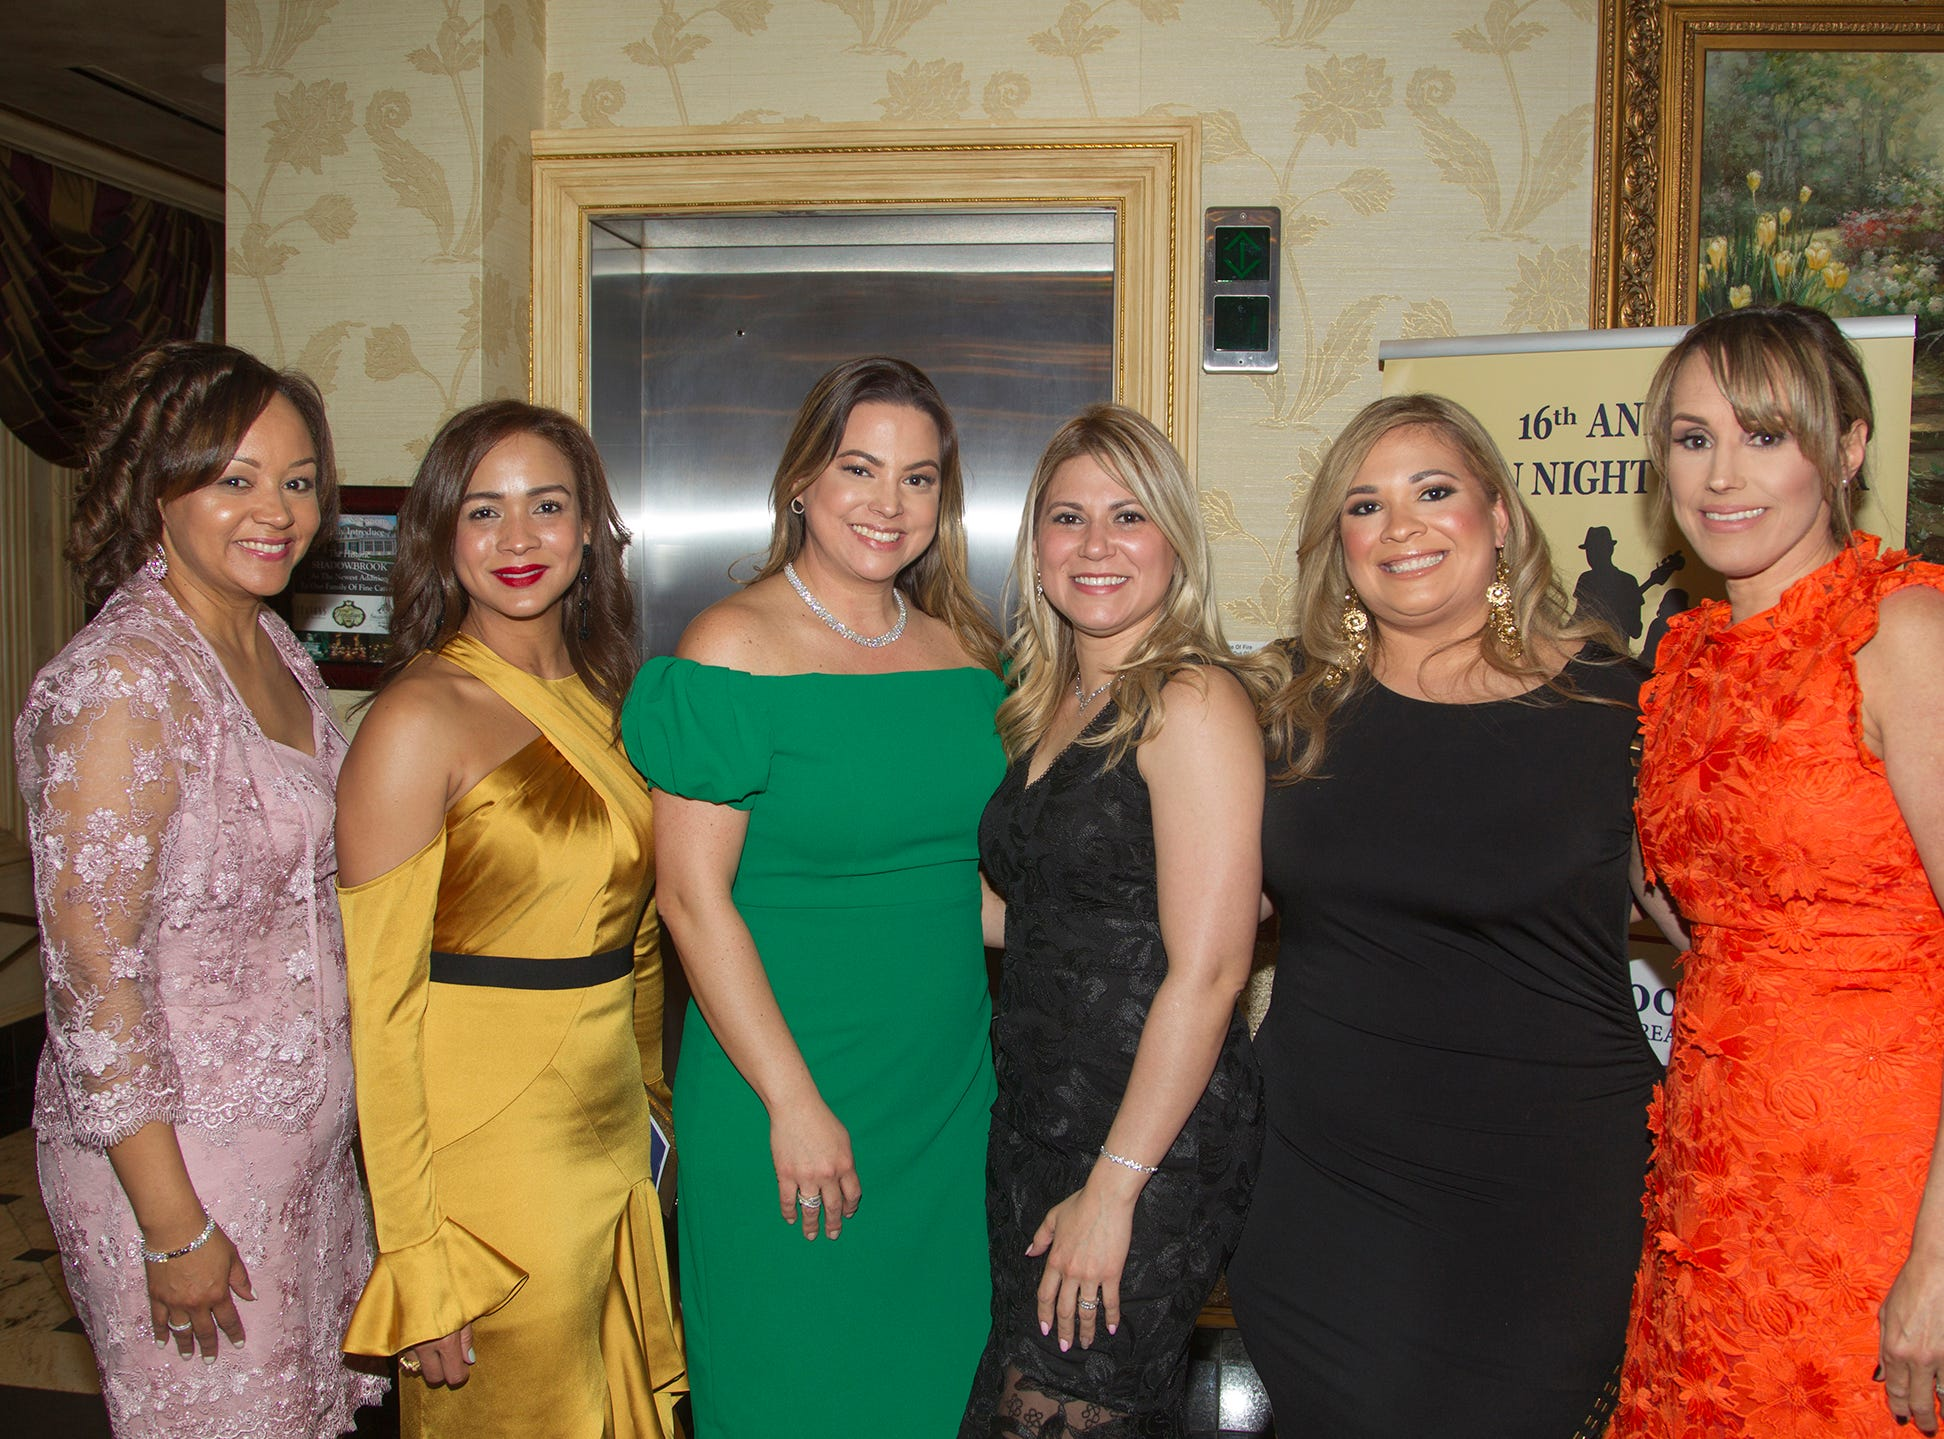 Sandra Pantello, Mildred Hsu, Tania Sanchez, Ivonne Chaudjry, Ingrid Estevez, Dana Herrera. Upper Saddle River Education Foundation hosted its Town Night Out Gala at Seasons in Washington Twp. 04/06/2019